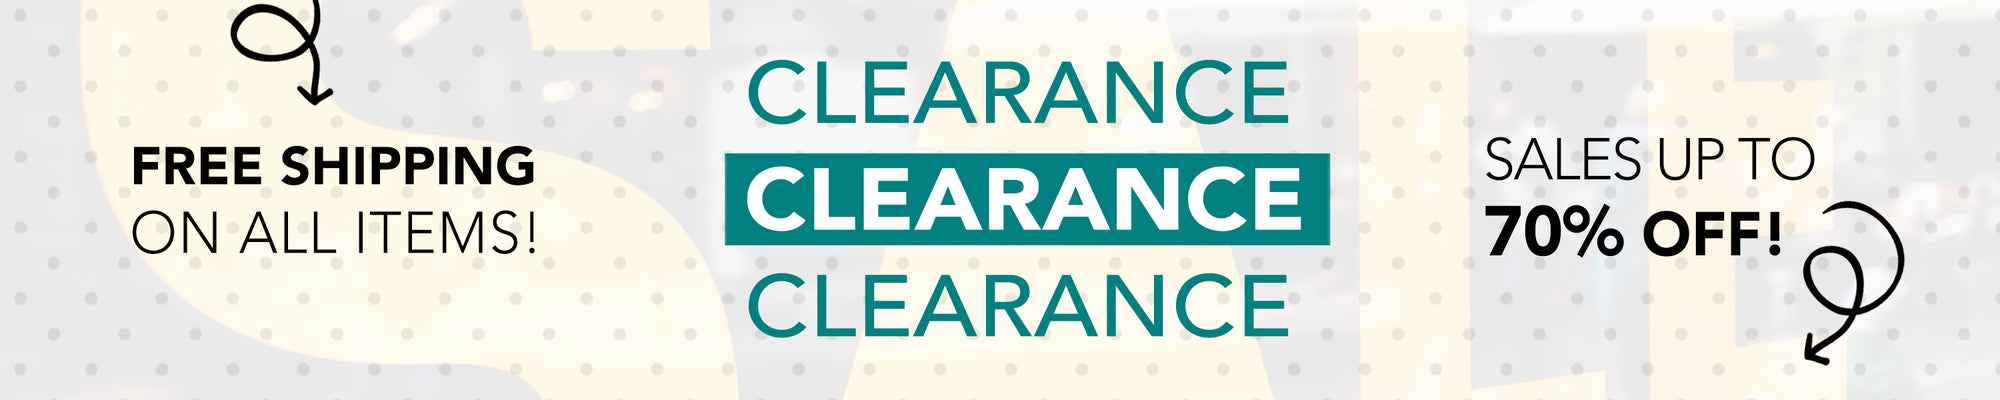 inspired home clearance deals with discounts up to 70% off